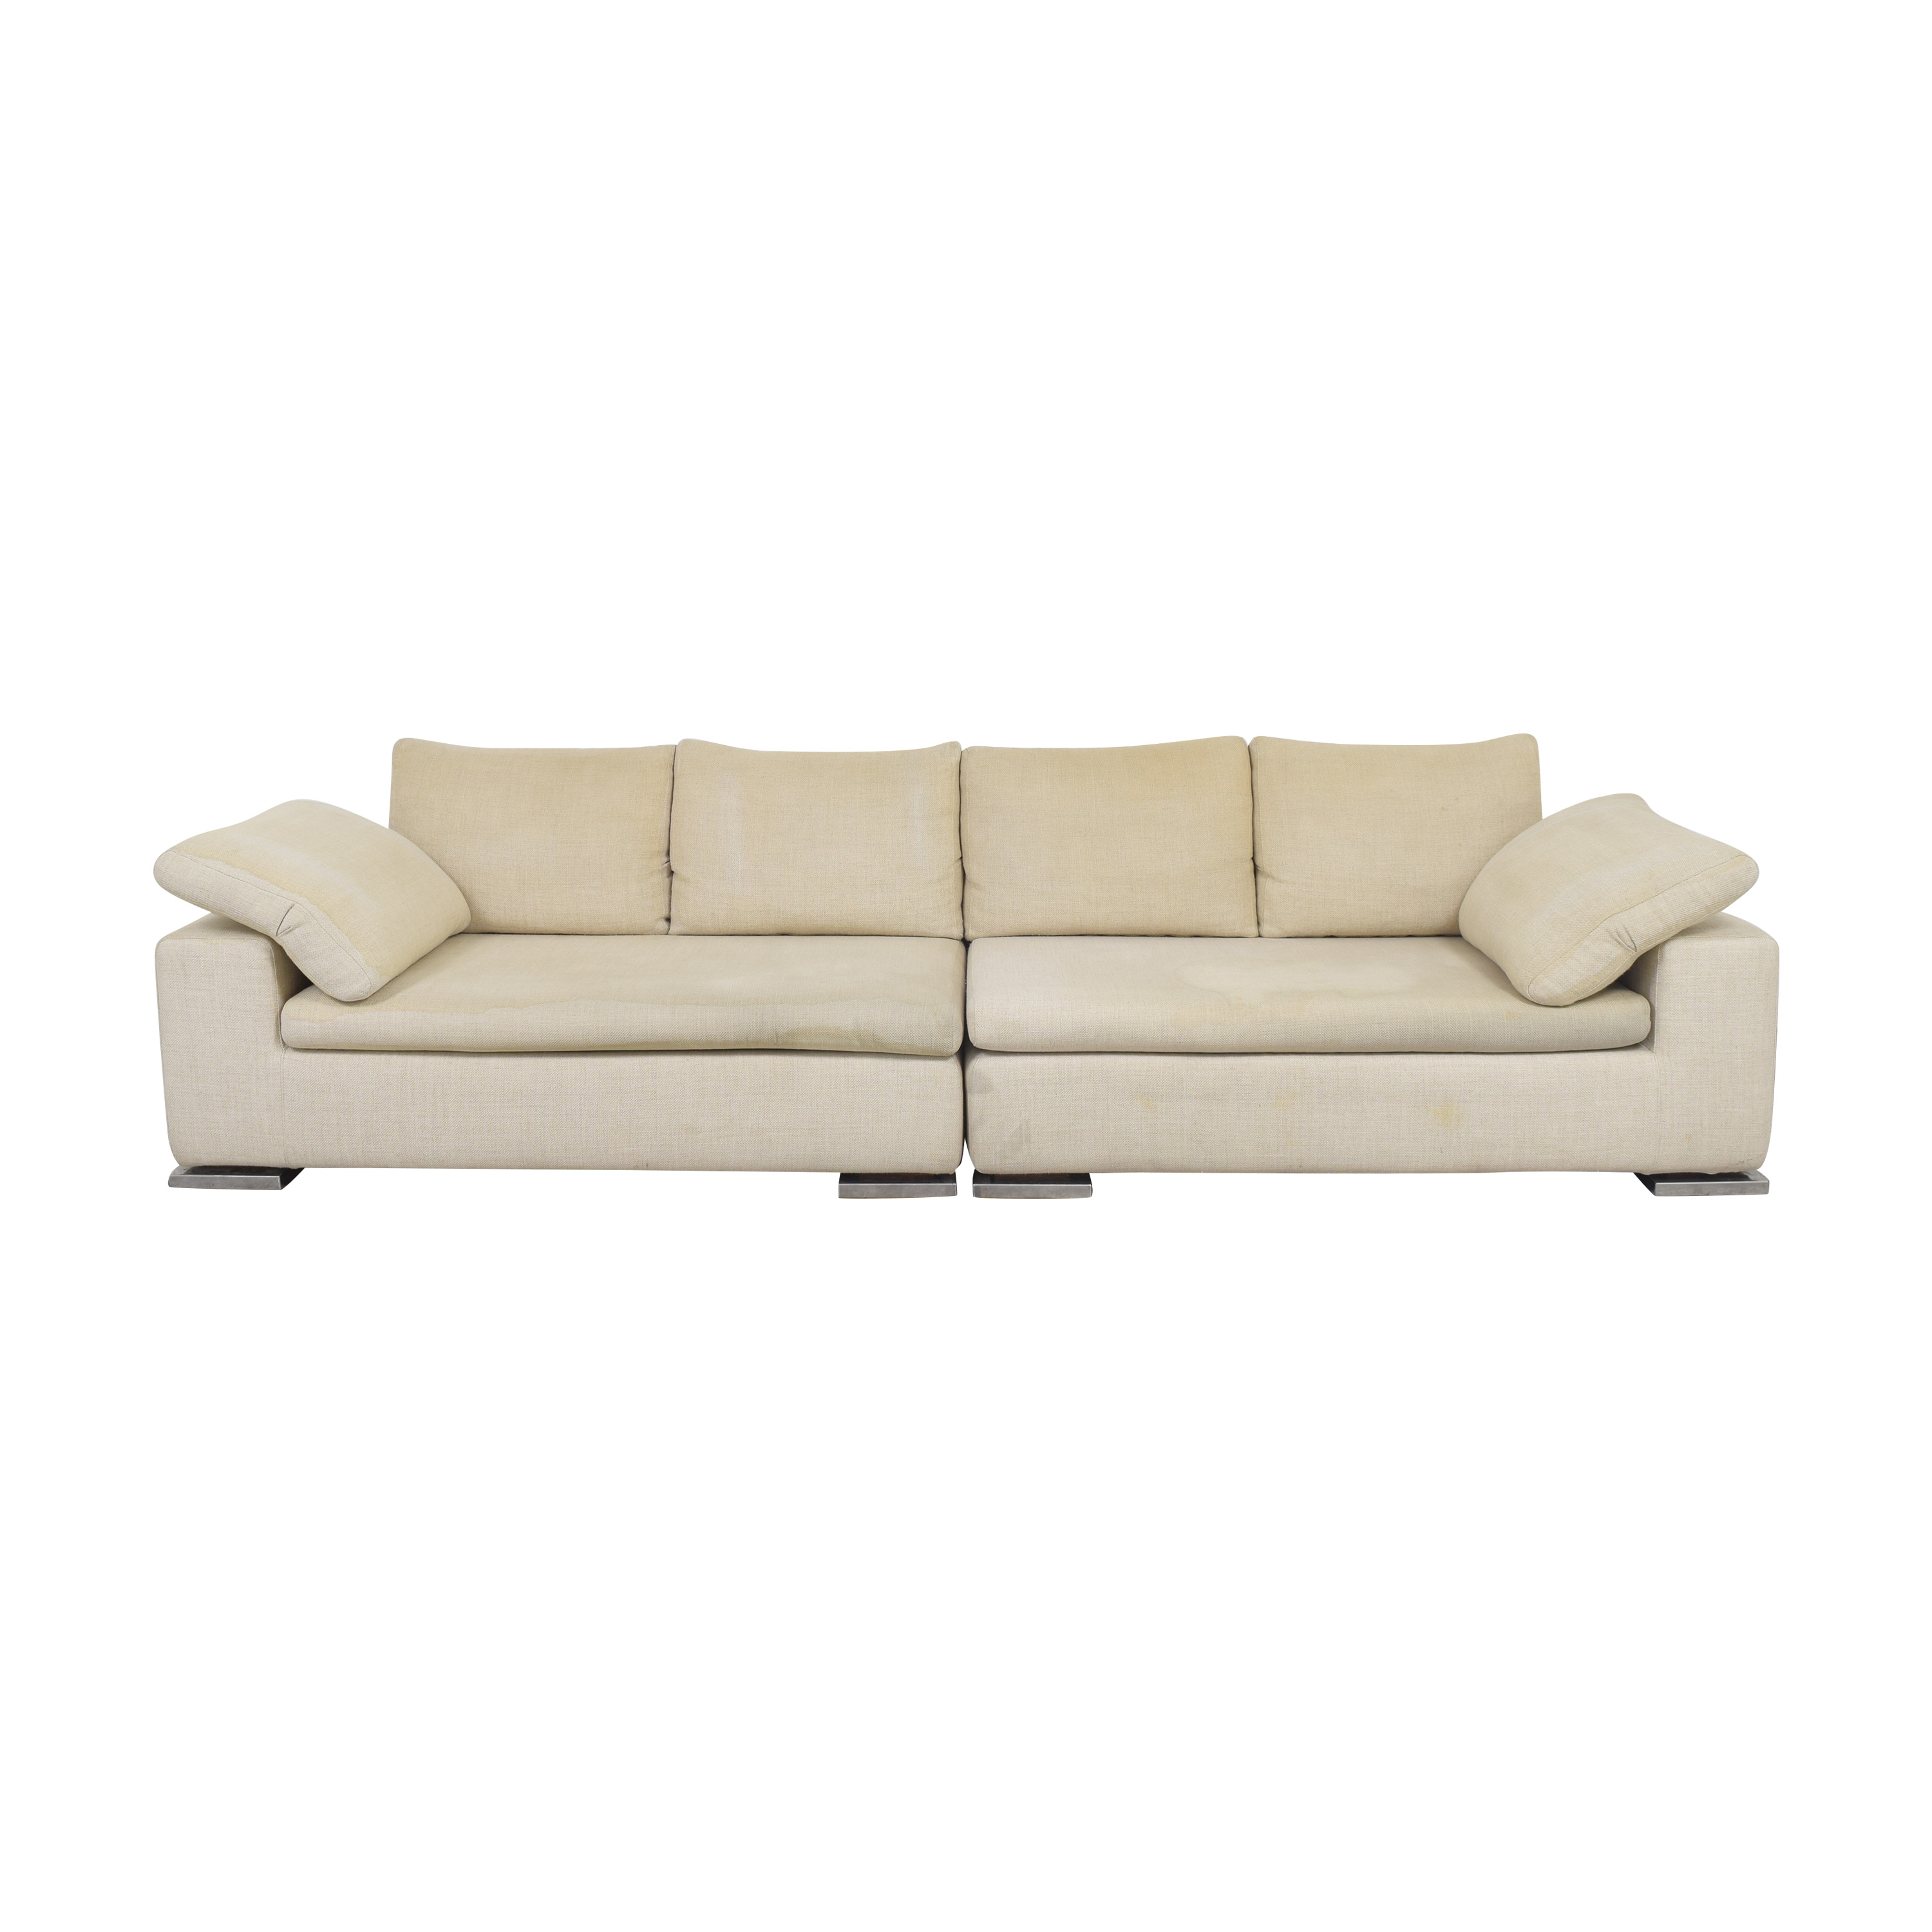 Symmetrical Two Piece Sectional Sofa